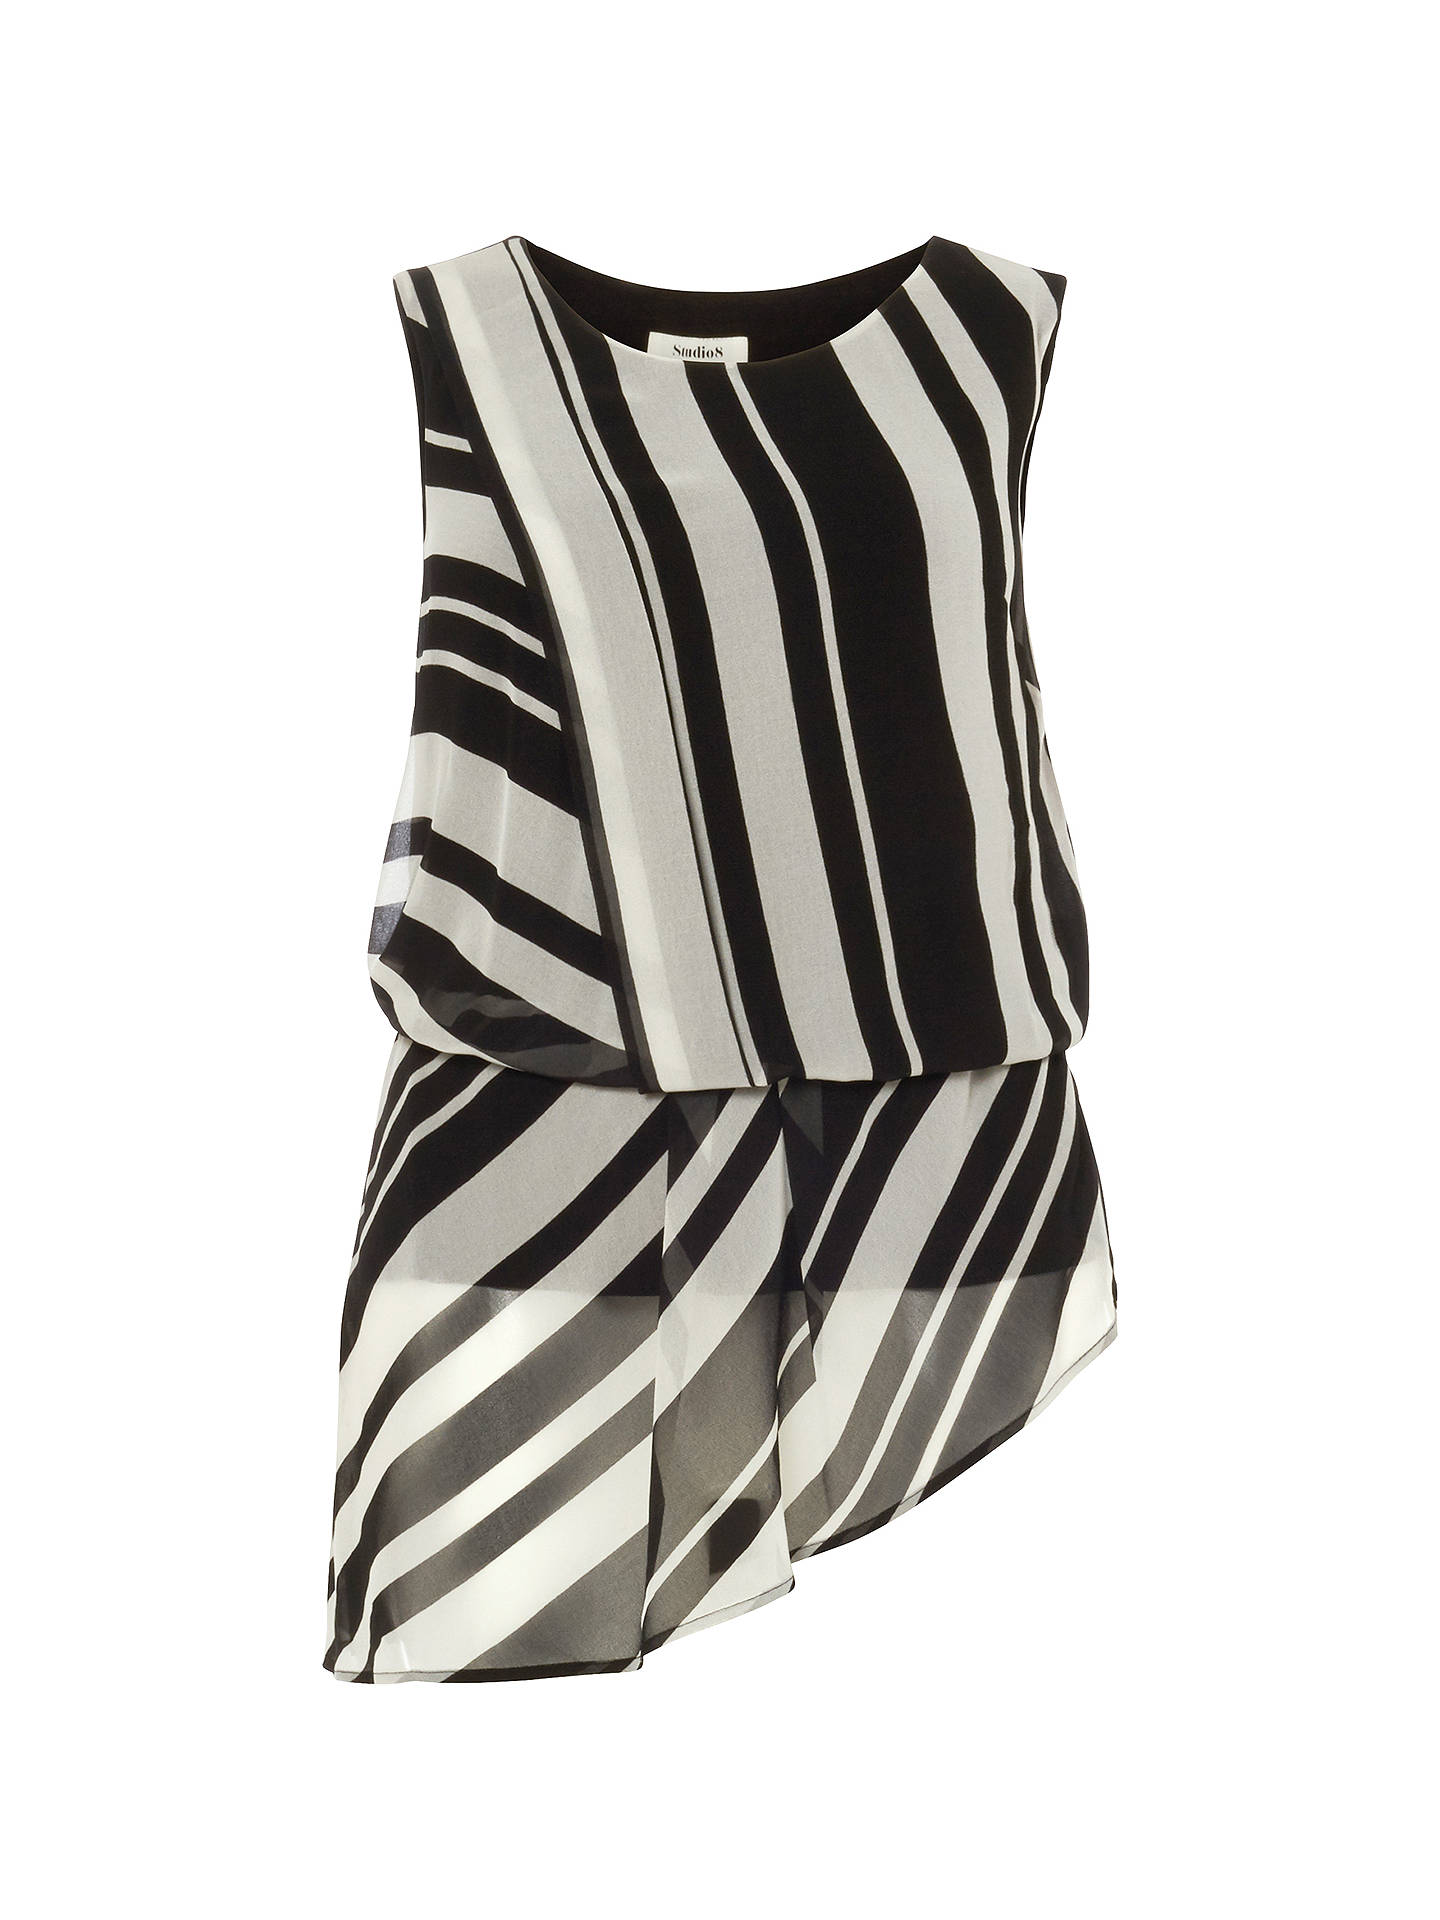 Buy Studio 8 Dita Top, Black/White, 26 Online at johnlewis.com